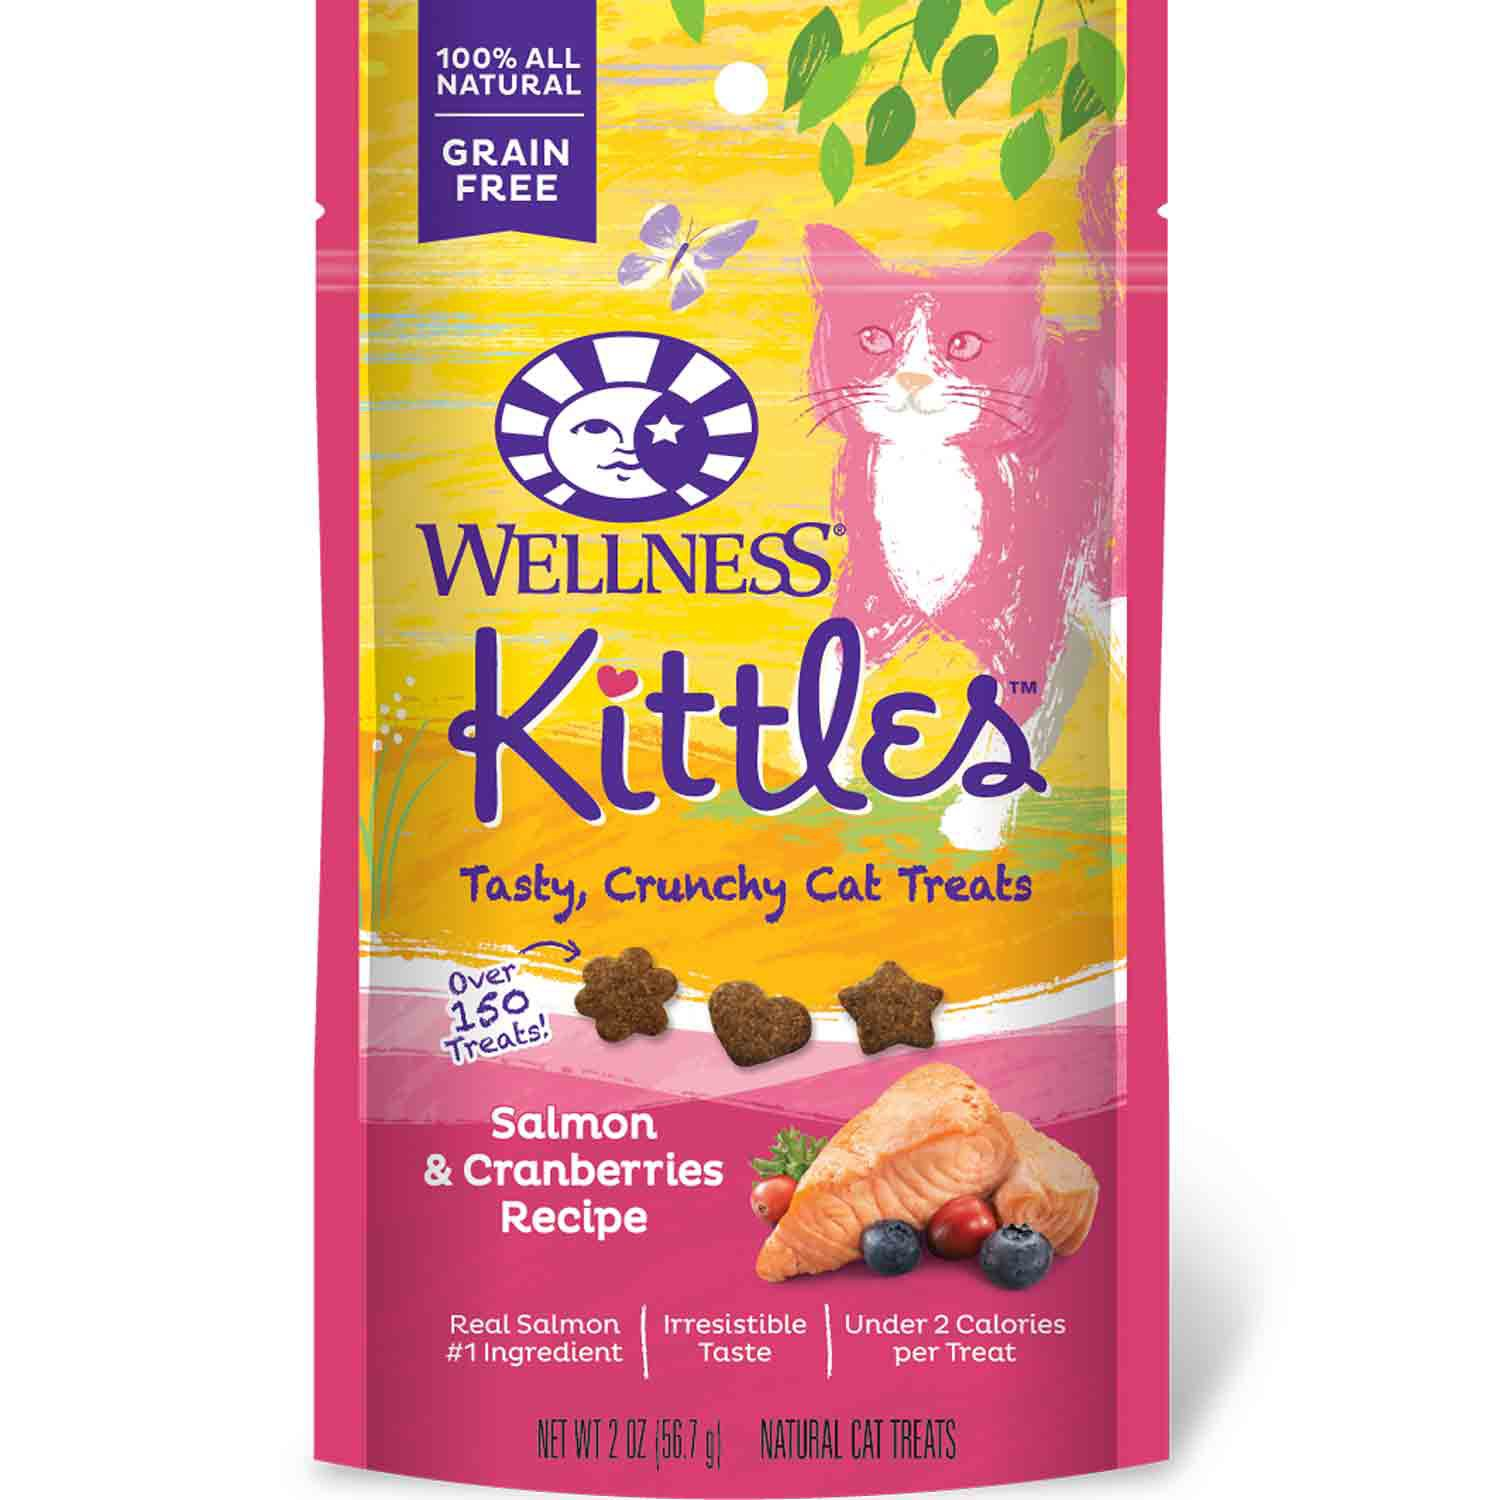 Wellness Kittles Salmon & Cranberry Cat Treats